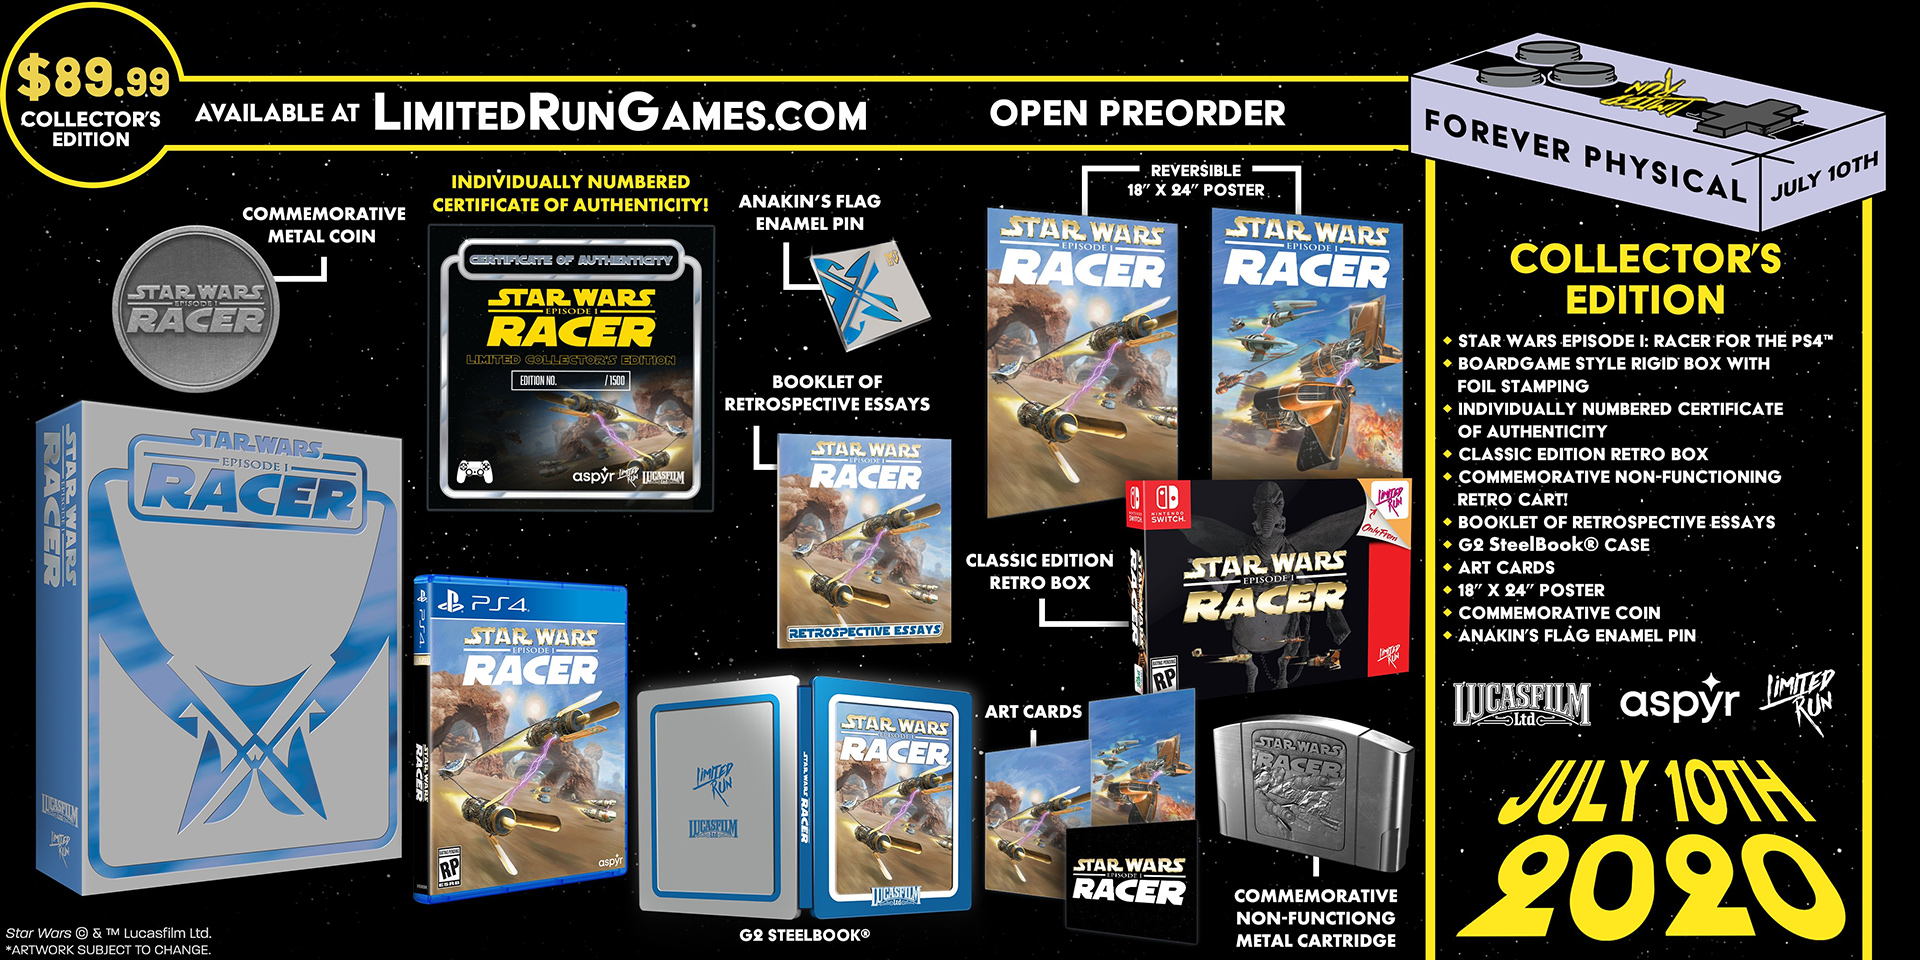 Star Wars Episode I: Racer collector's edition Limited Run Games